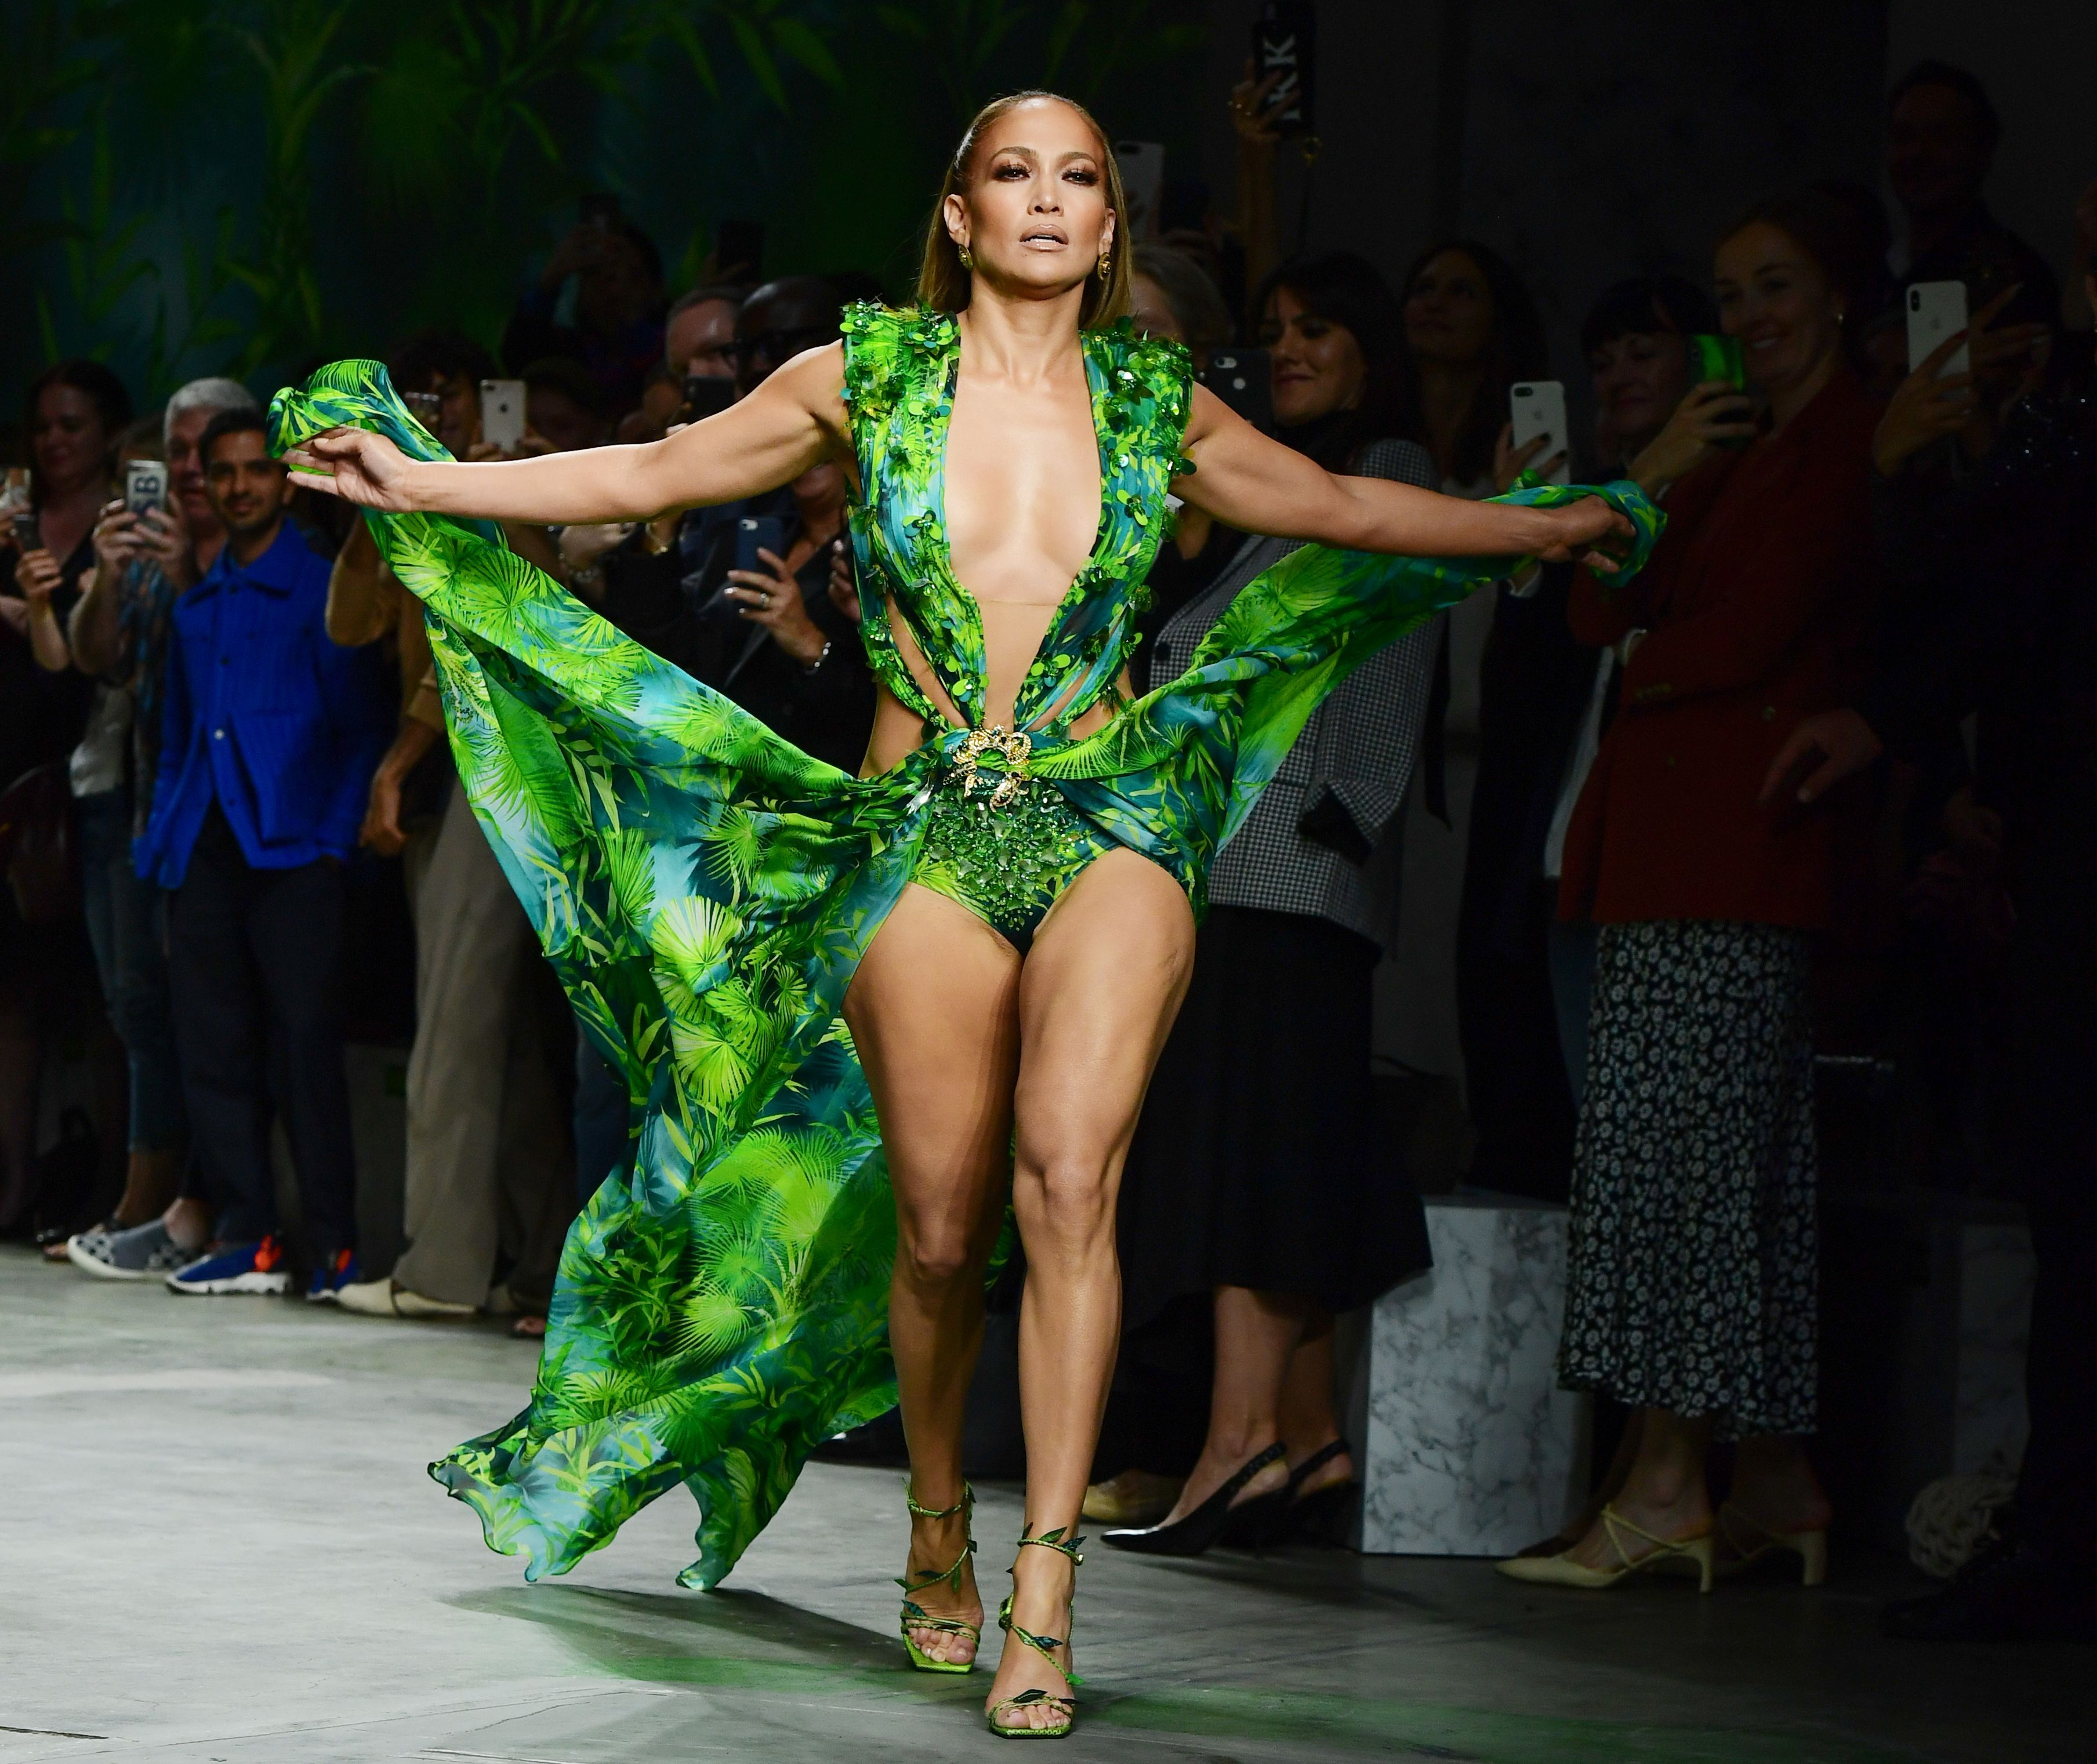 Jennifer Lopez Just Walked the Runway in Her Famous Green Palm Print Gown